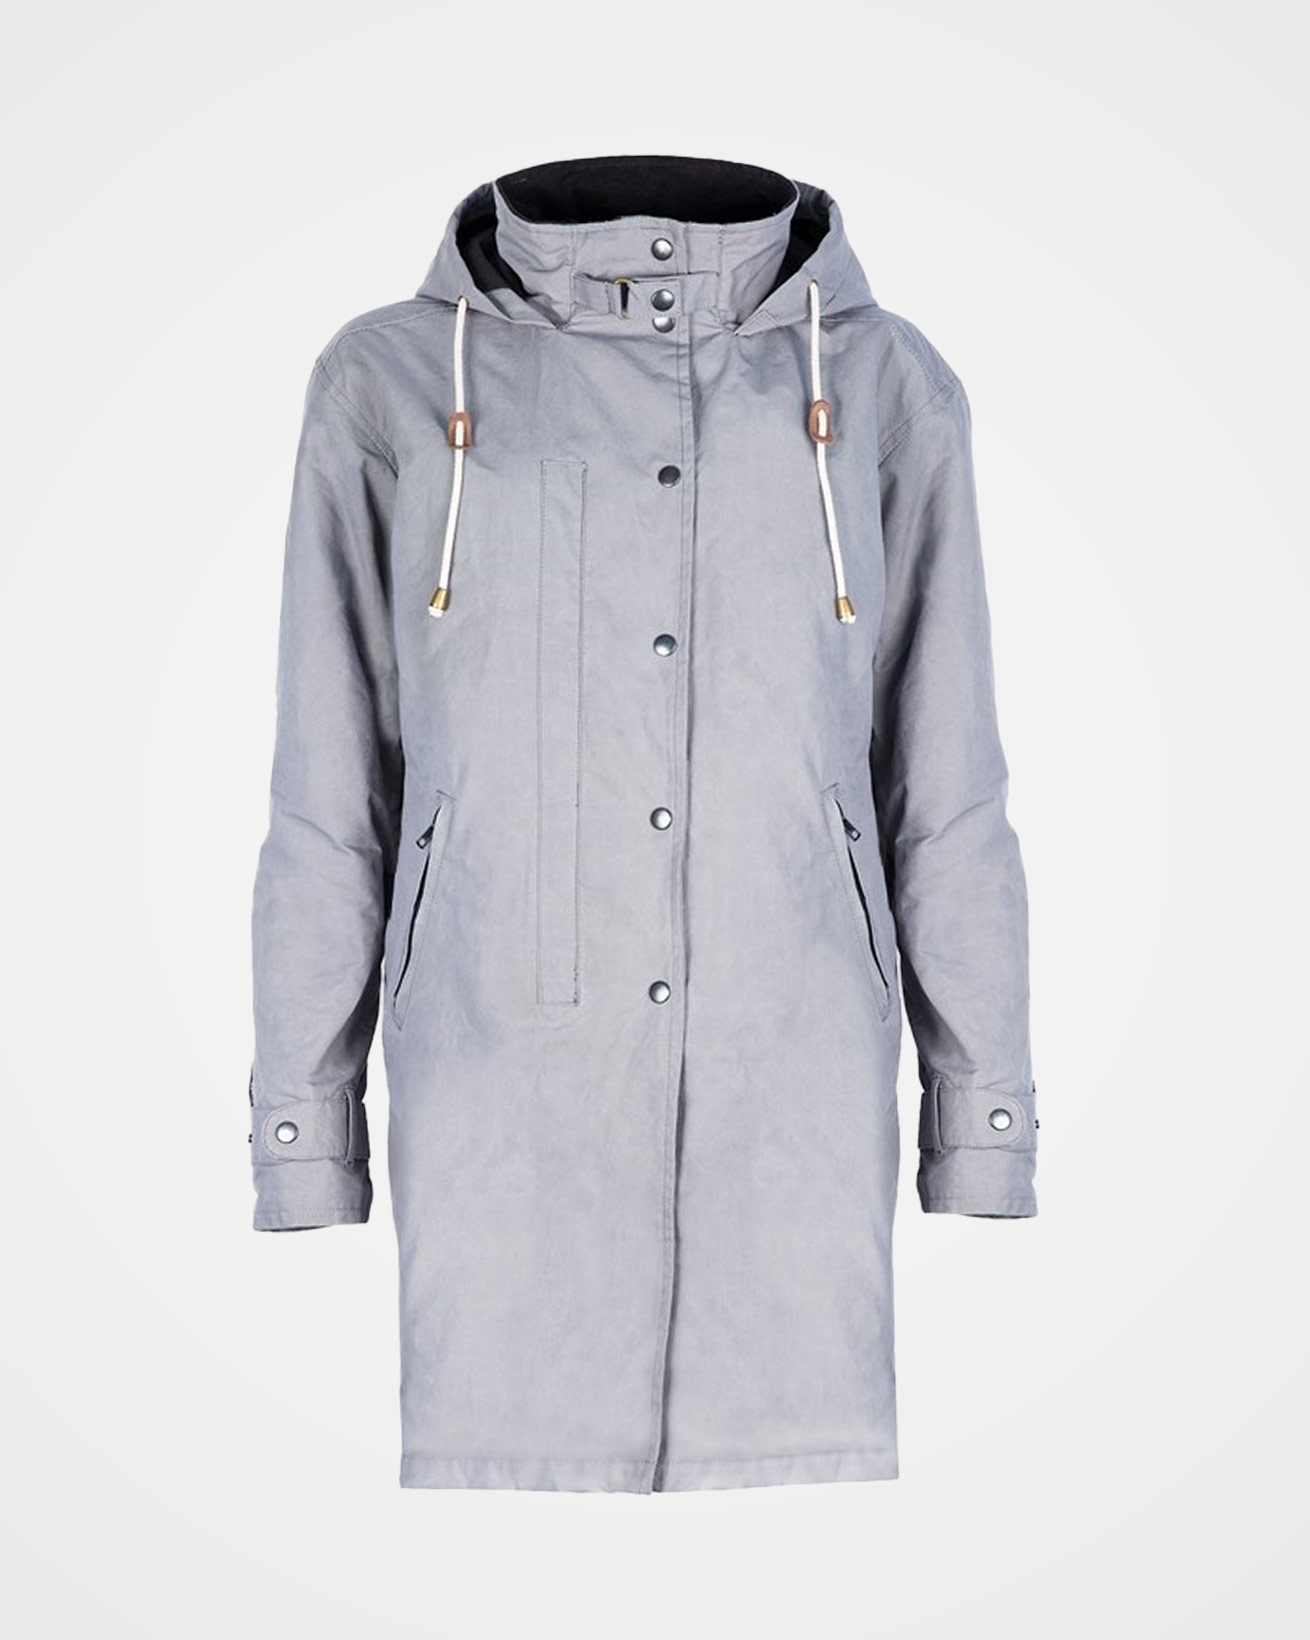 7431_waxed-cotton-parka_light-grey_front.jpg